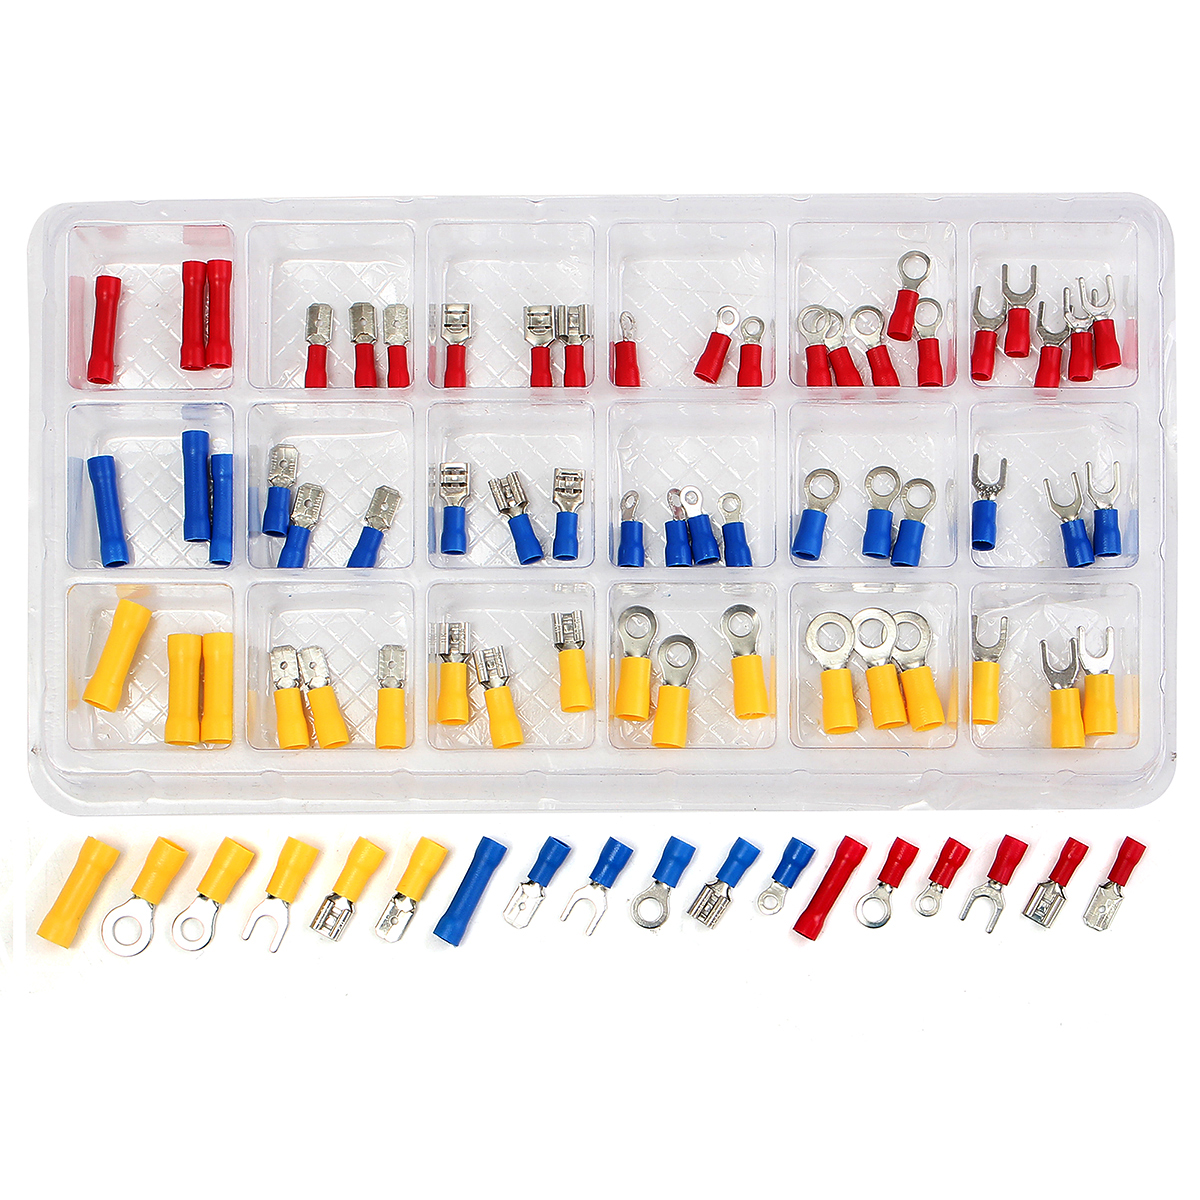 76Pcs Insulated Butt Spade Ring Fork Crimp Terminal Car Audio Wire Connector Assorted Crimp Terminals With Handy Storage Box yt 480pcs insulated crimp terminals seal butt electrical wire cable spade ring fork crimping connector set with storage box